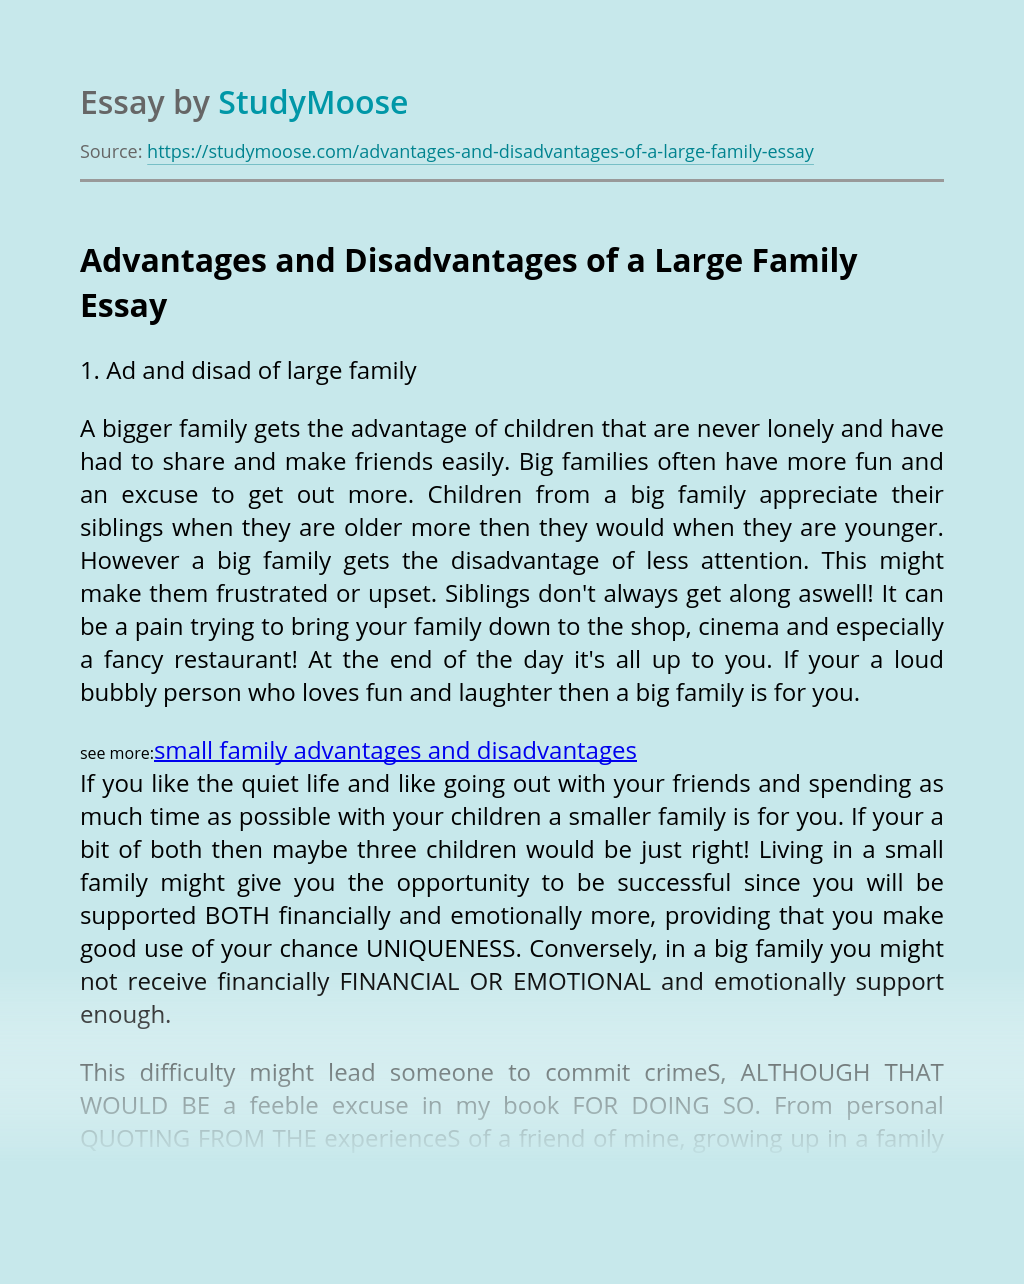 Advantages and Disadvantages of a Large Family